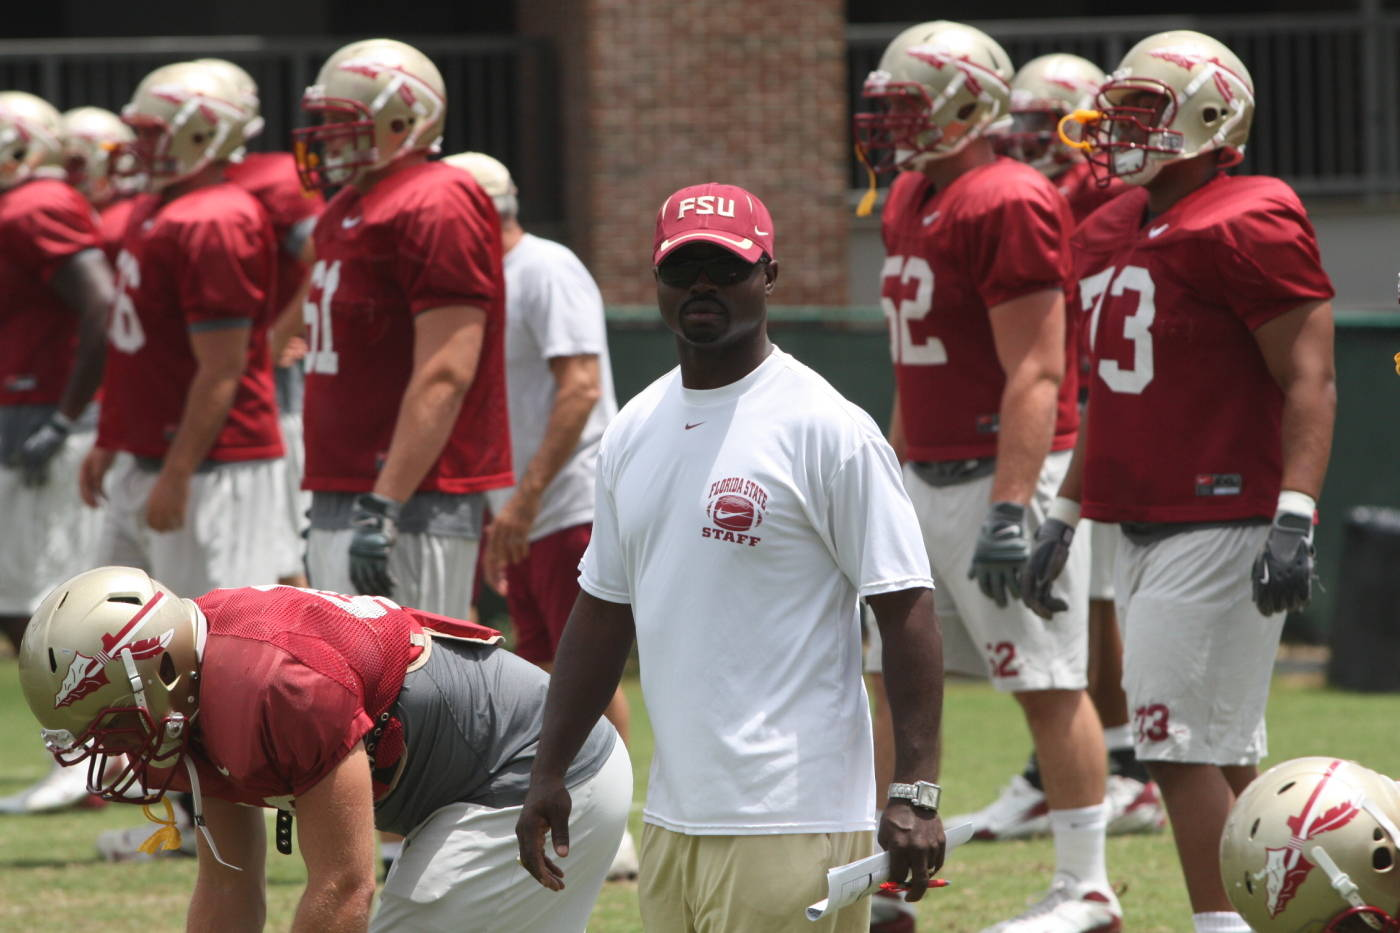 FSU Seminoles preparing for Saturday's scrimmage.